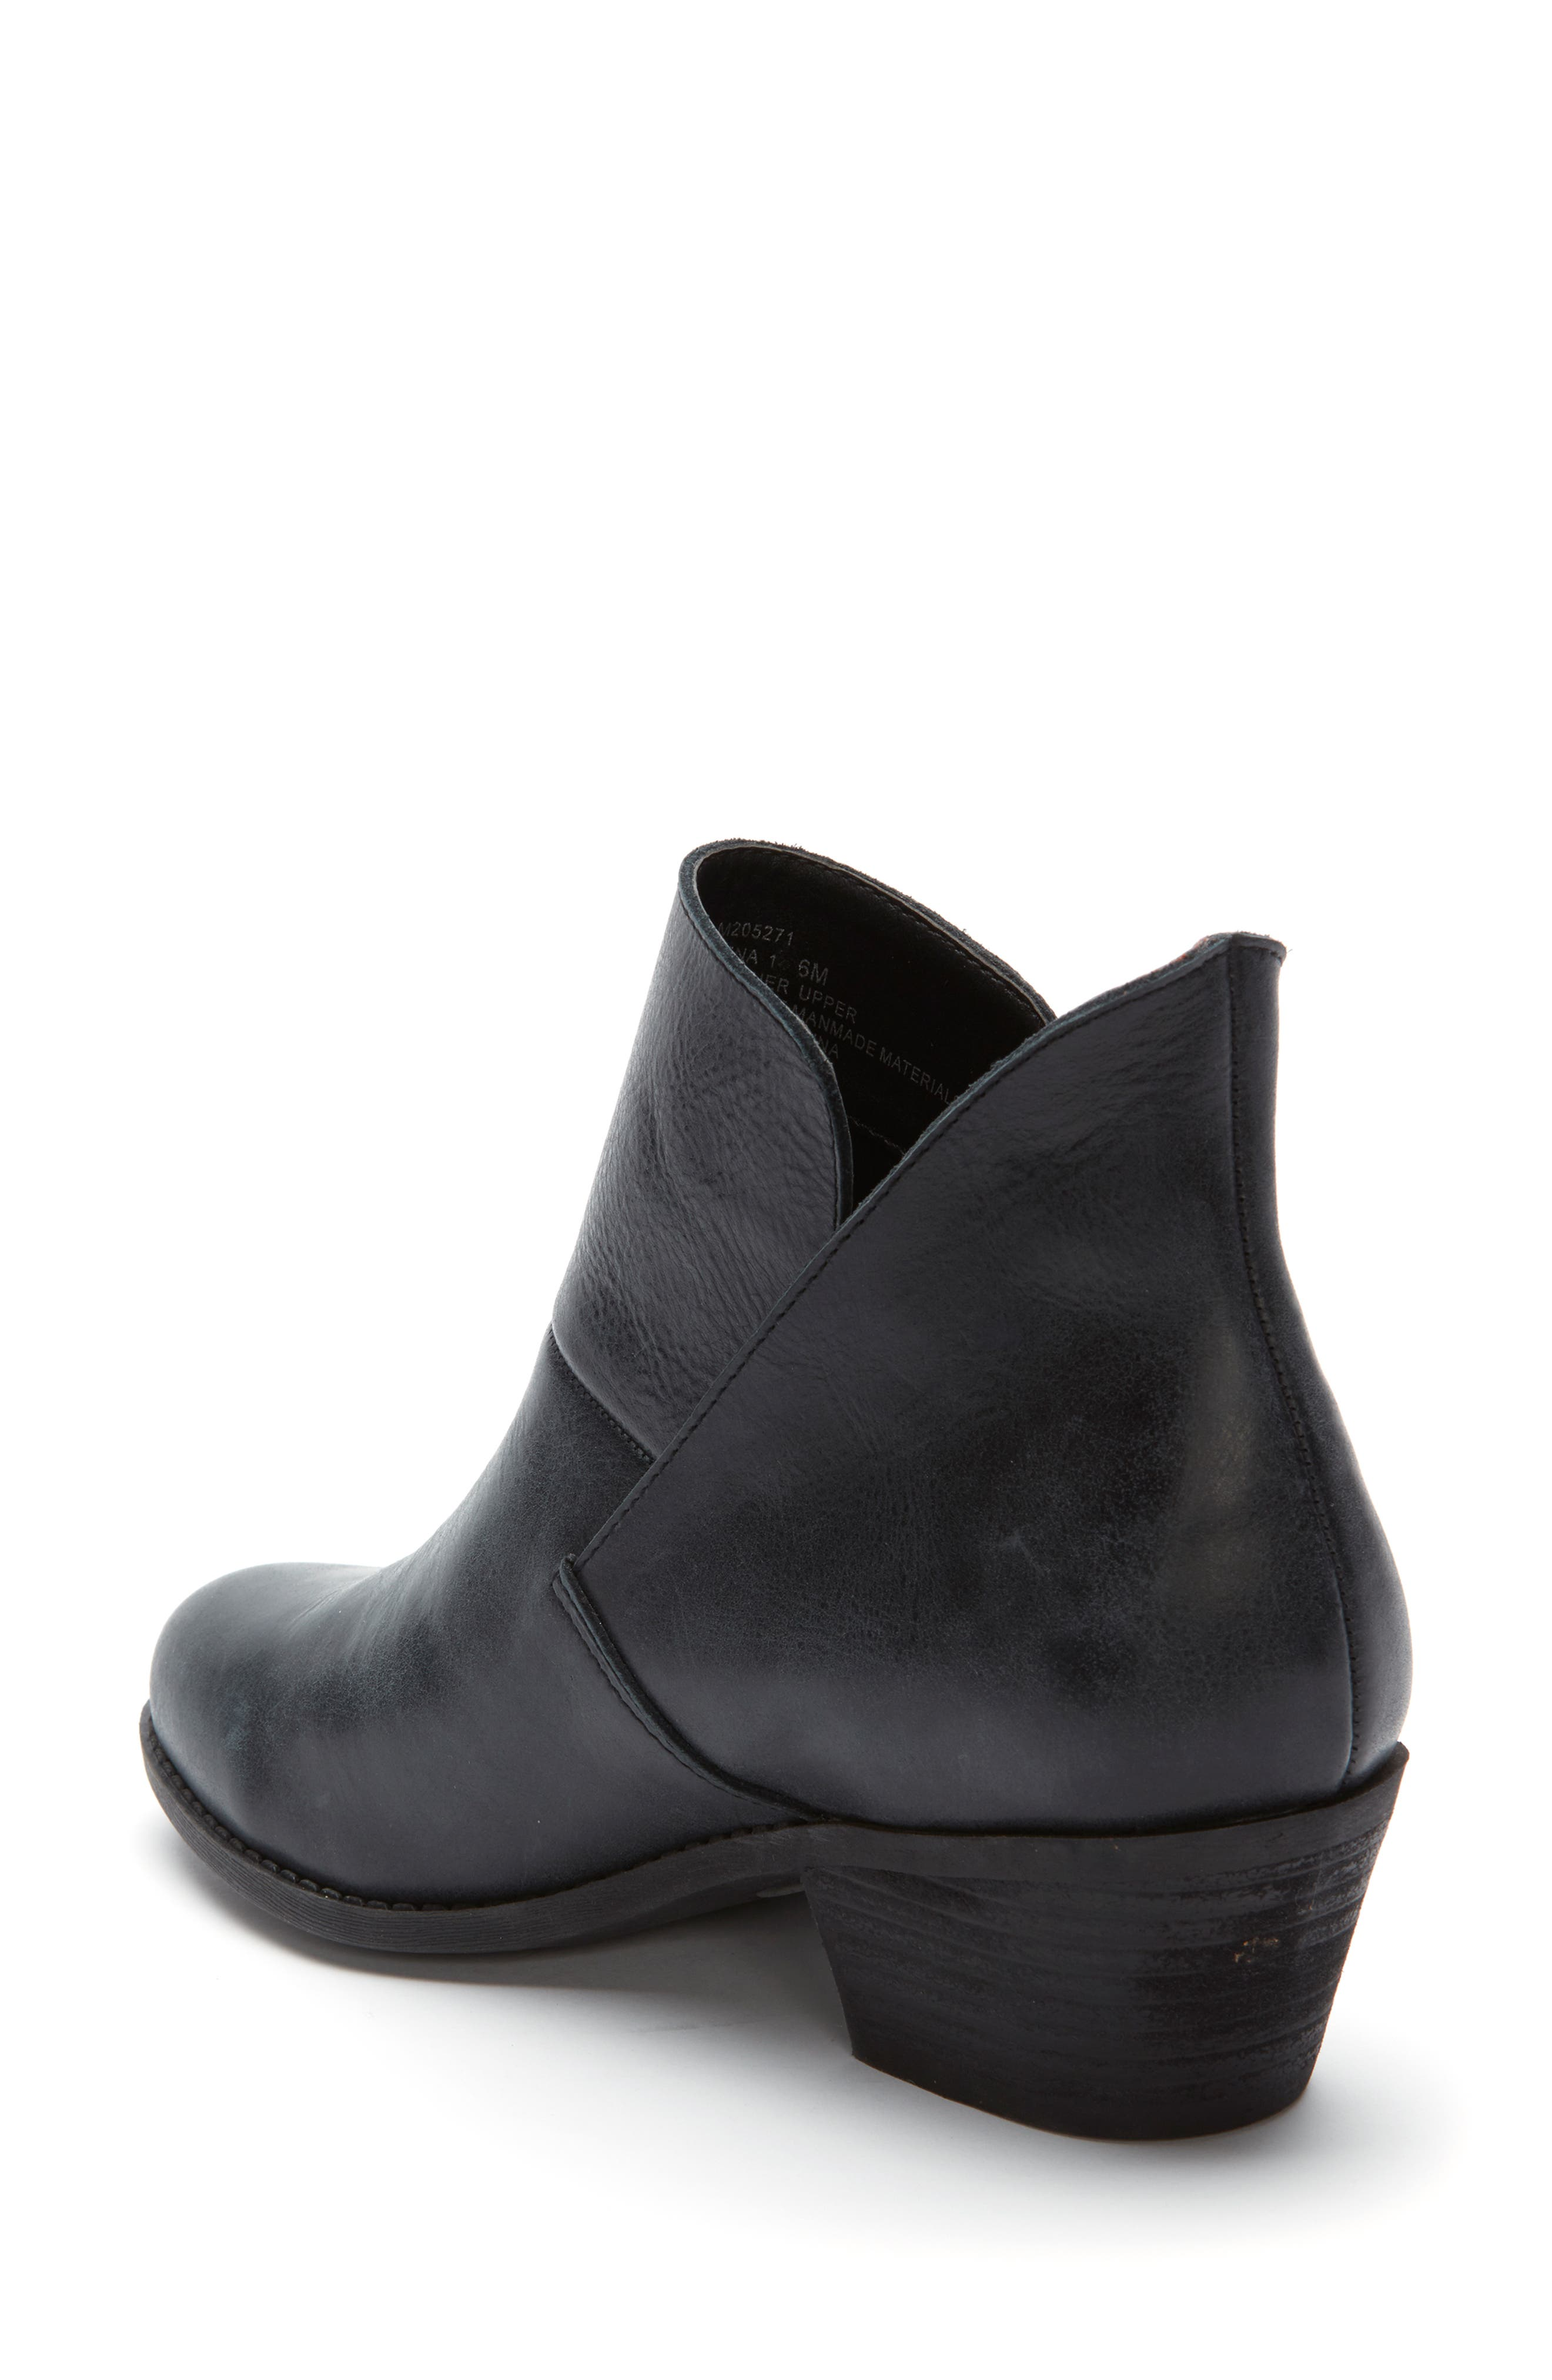 Me Too Zena Ankle Boot,                             Alternate thumbnail 2, color,                             BLACK LEATHER